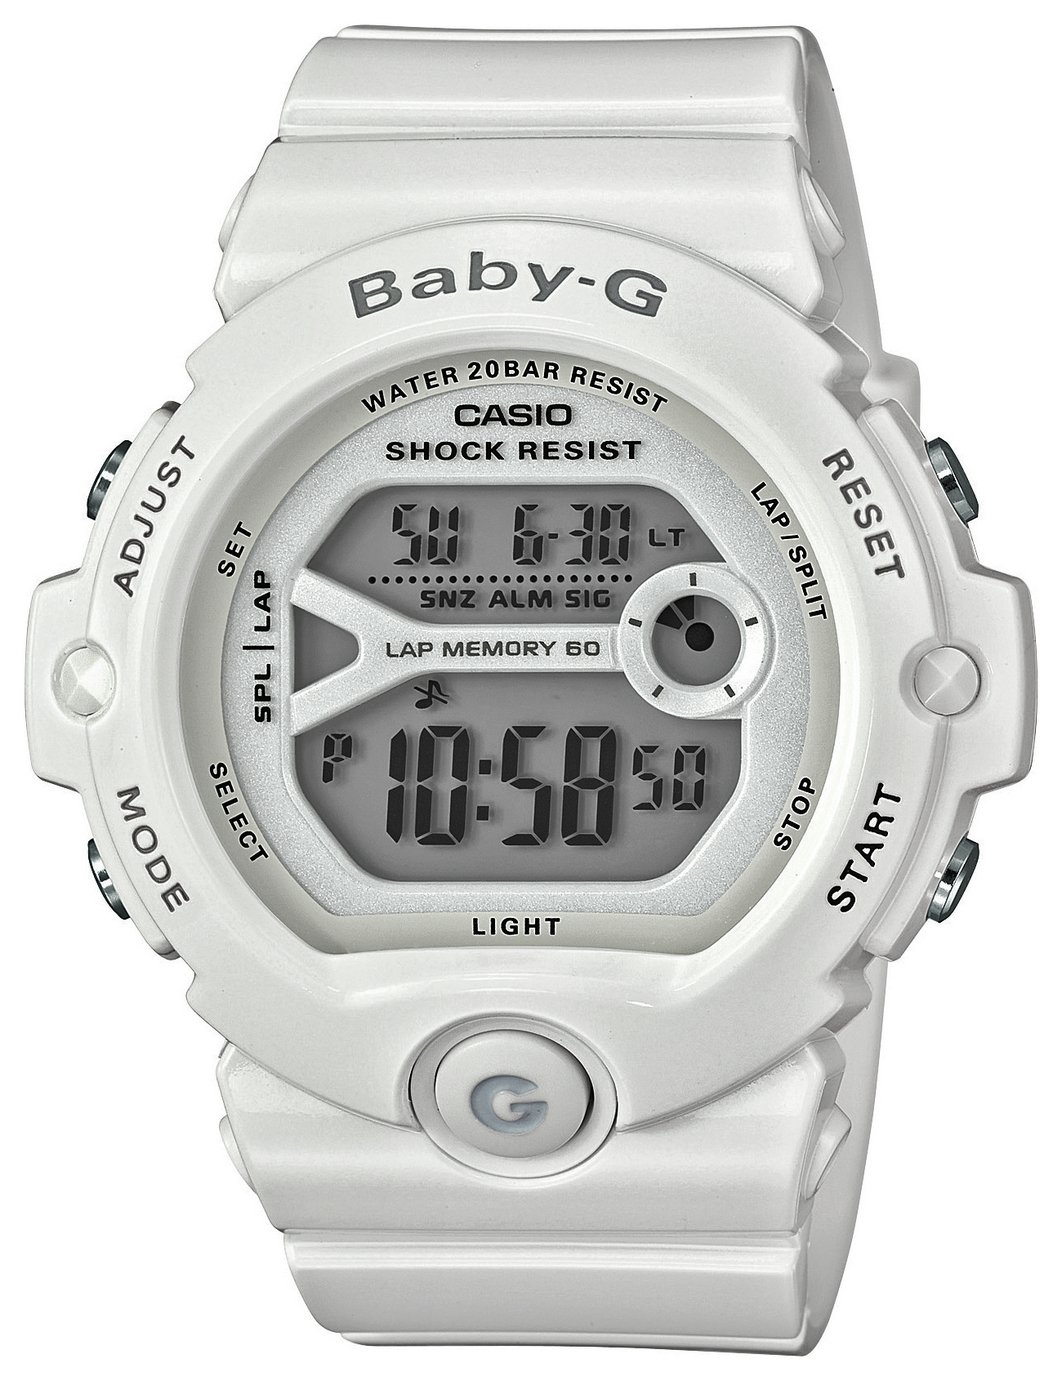 Casio Baby-G Ladies' White Shock Resistant Watch